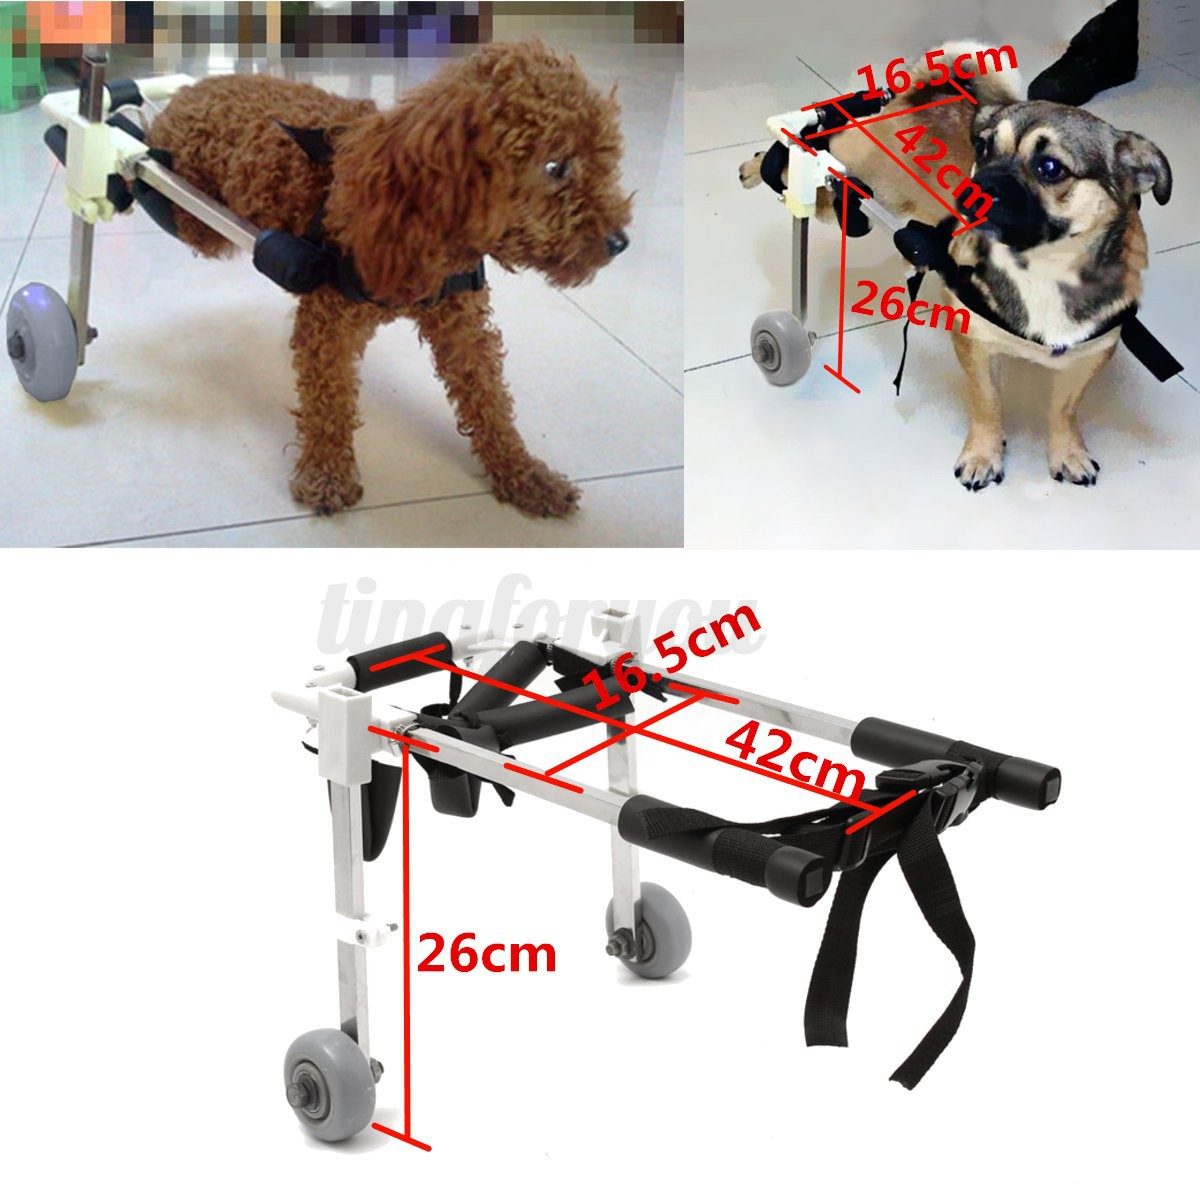 wheelchair dog fold out lawn chair 4 types variety pet for handicapped hind legs